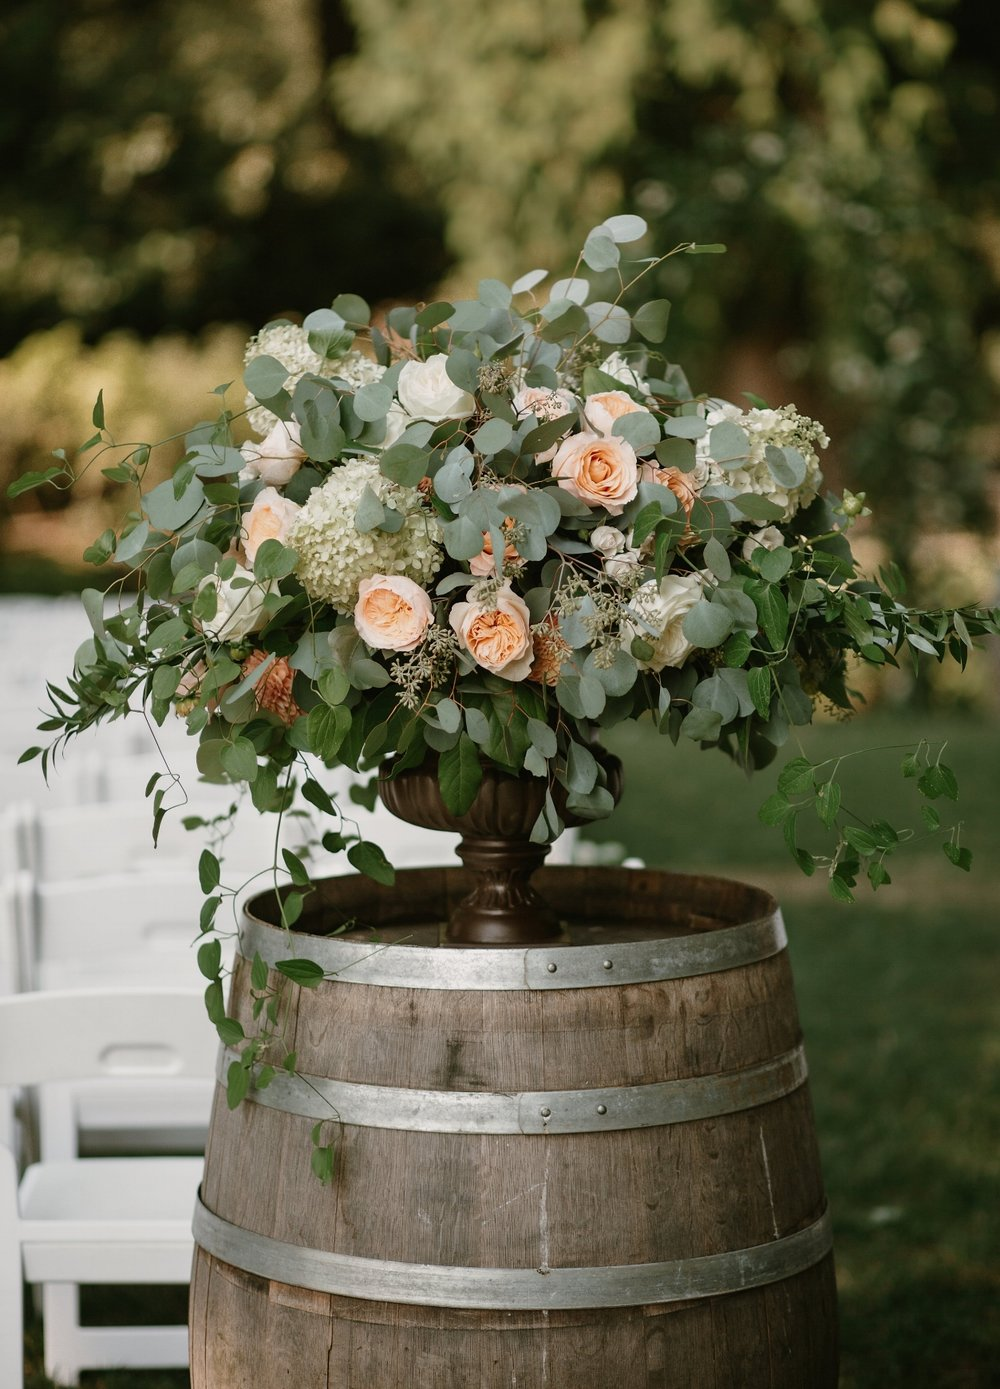 Vintage urn on wine barrel-Photos by Kristen Marie Parker